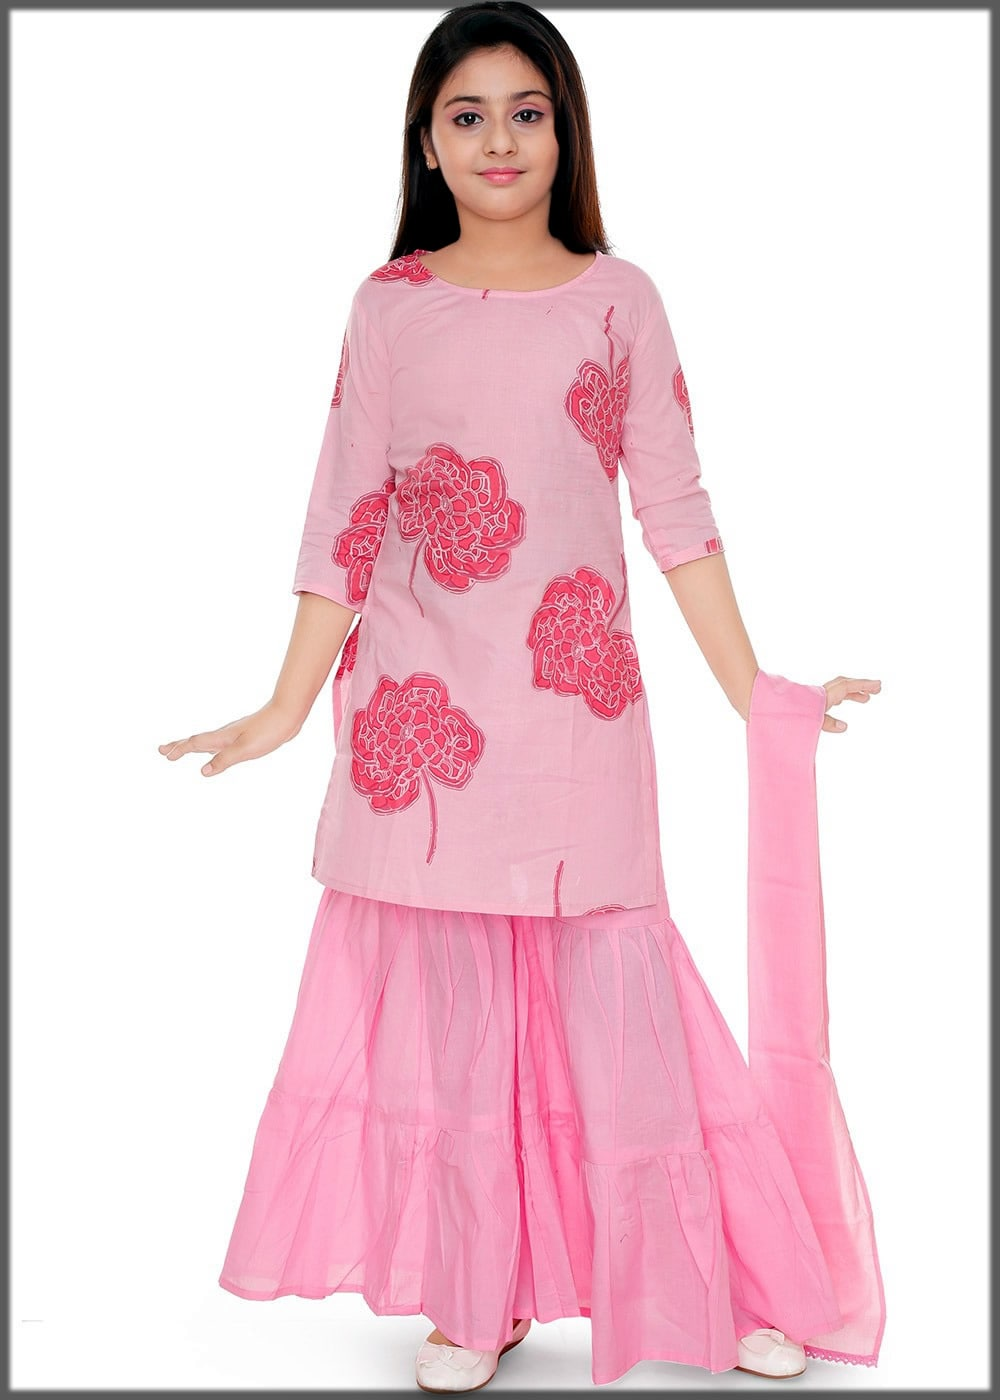 Pink stylish sharara dress for baby girl